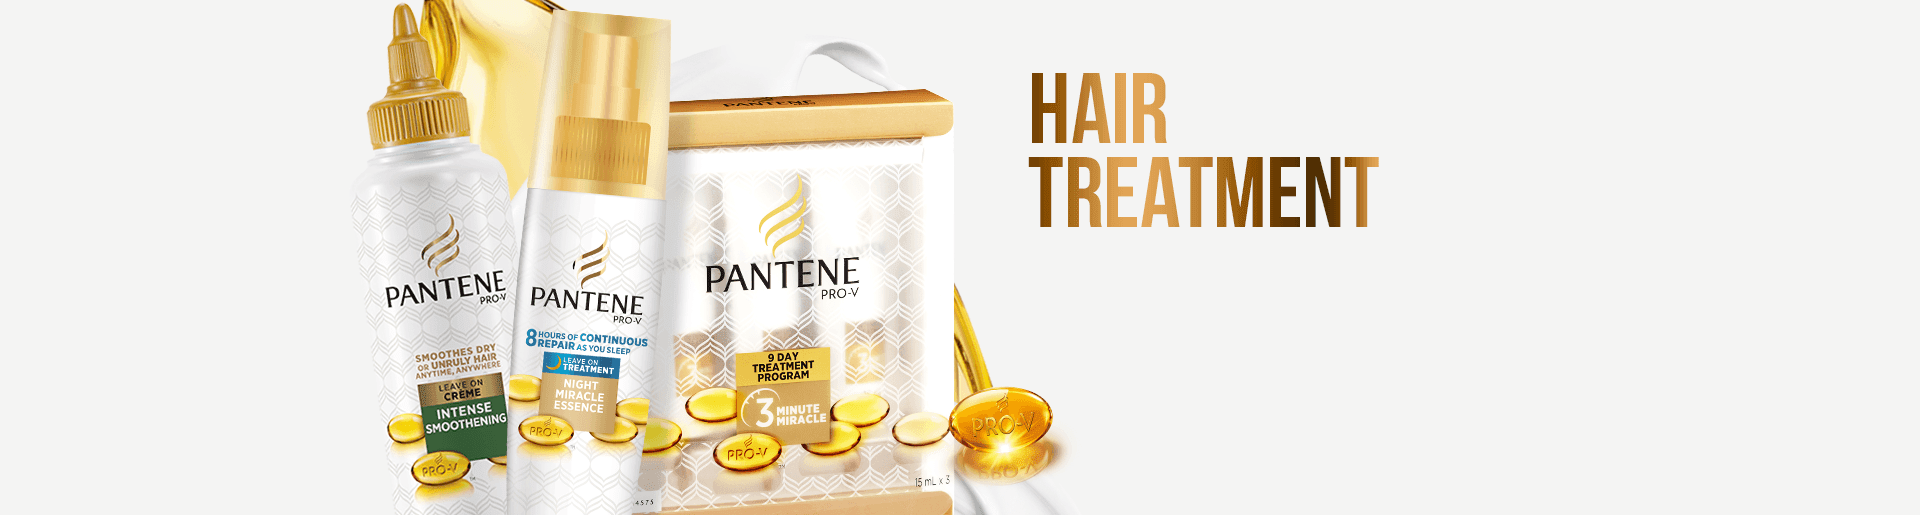 Pantene hair treatment